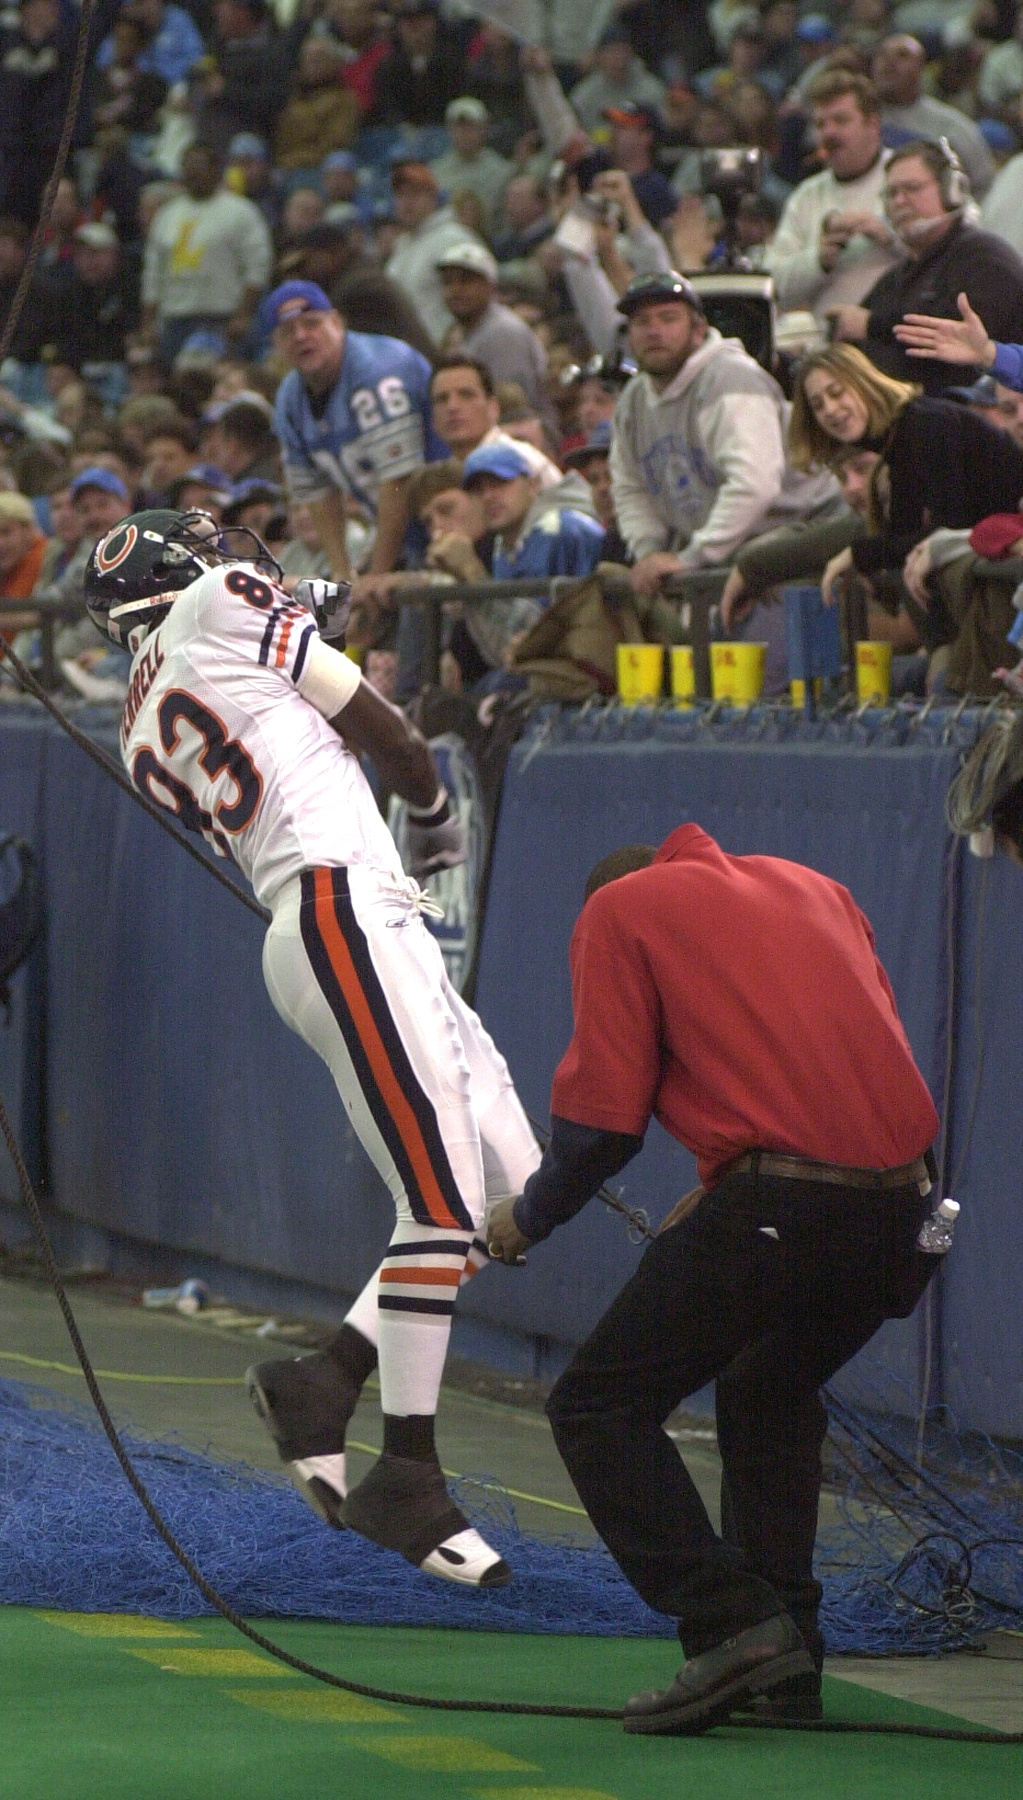 . David Terrell (83) of the Chicago Bears throws the ball into the stands after scoring a touchdown in the first half of action against the Detroit Lions during Sunday\'s game played at the Pontiac Silverdome on Sunday Dec. 30, 2001. The Bears won 24-0 over the Lions.